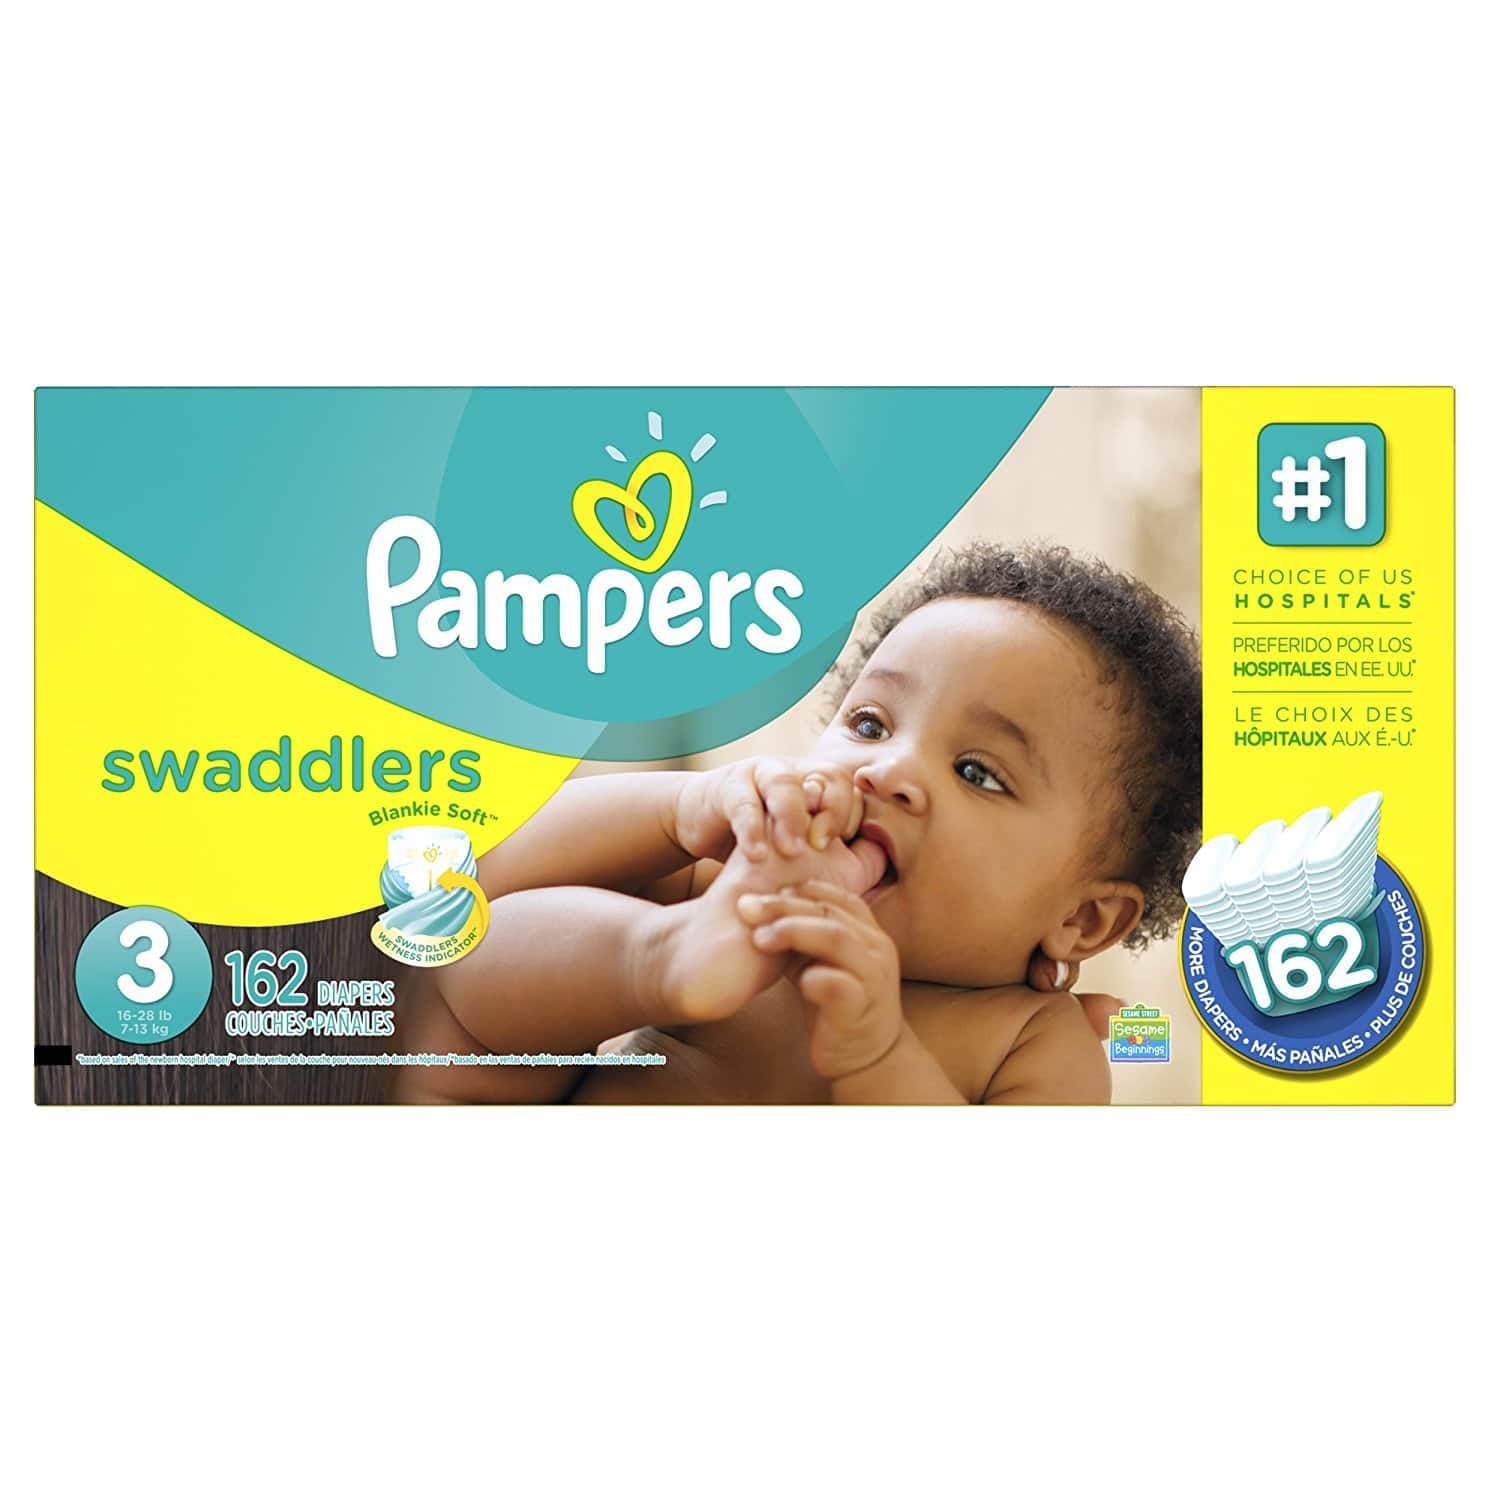 Amazon Prime Family Members: Pampers Swaddlers - $2 off Coupon + 20% Off w/ S&S